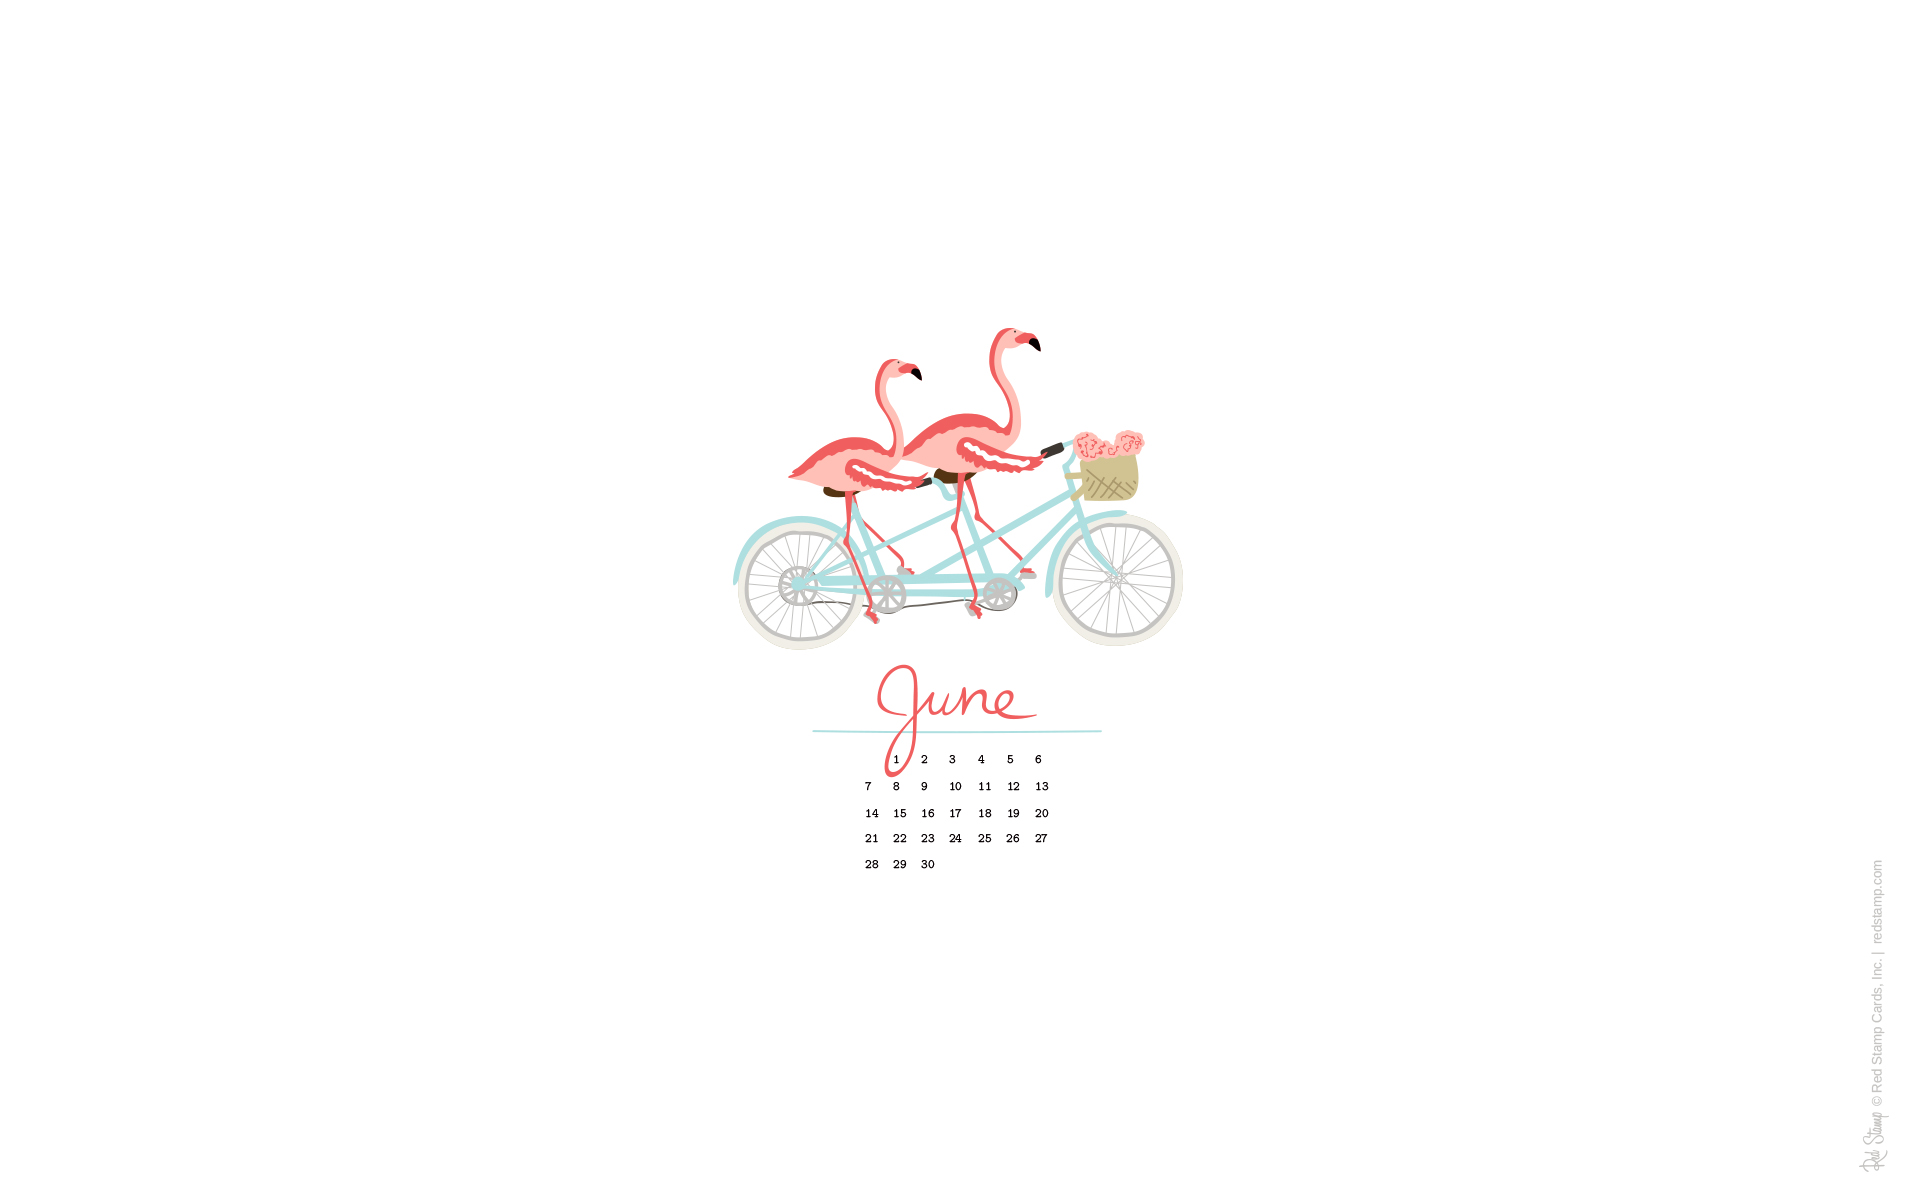 June 2015 Calendars and Wallpaper   Red Stamp 1920x1200